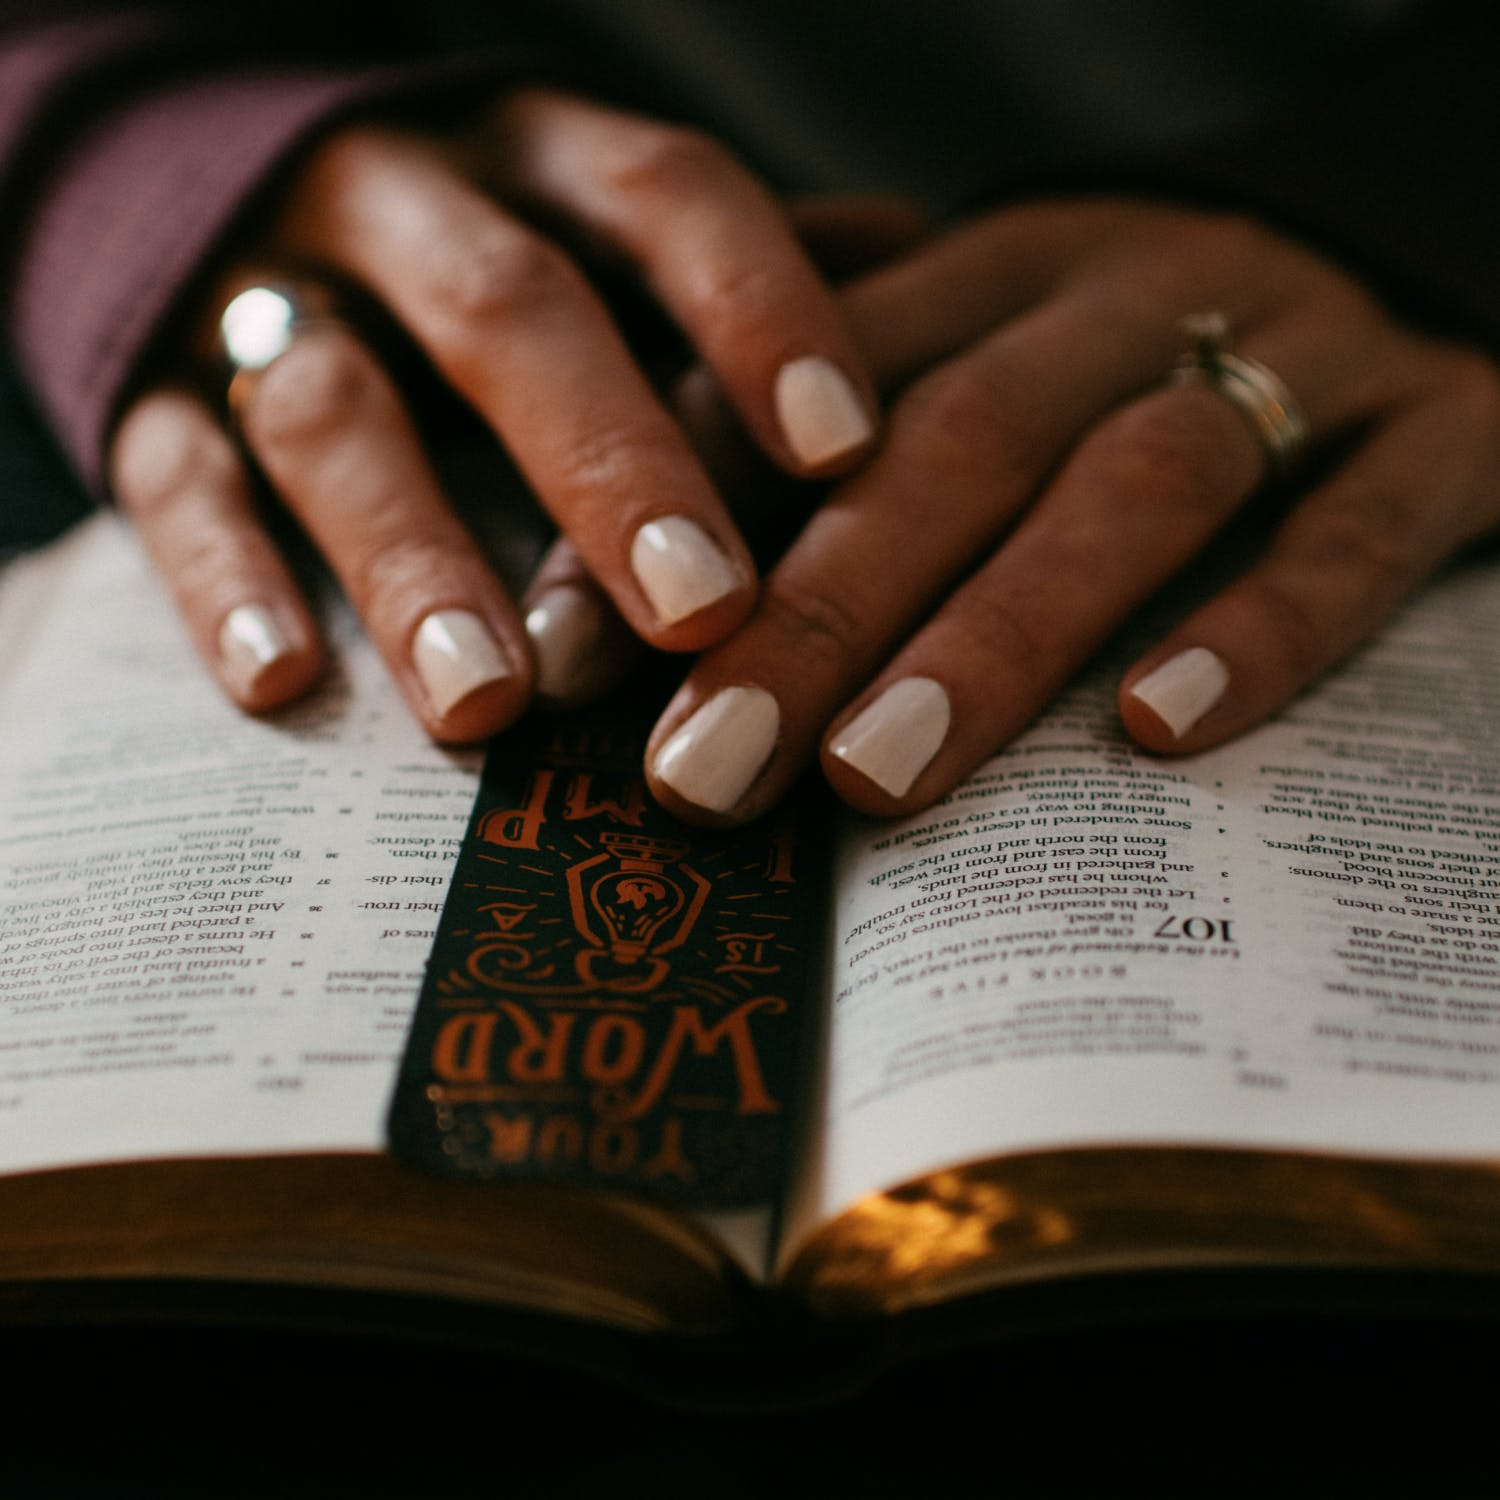 Two hands over a Bible.